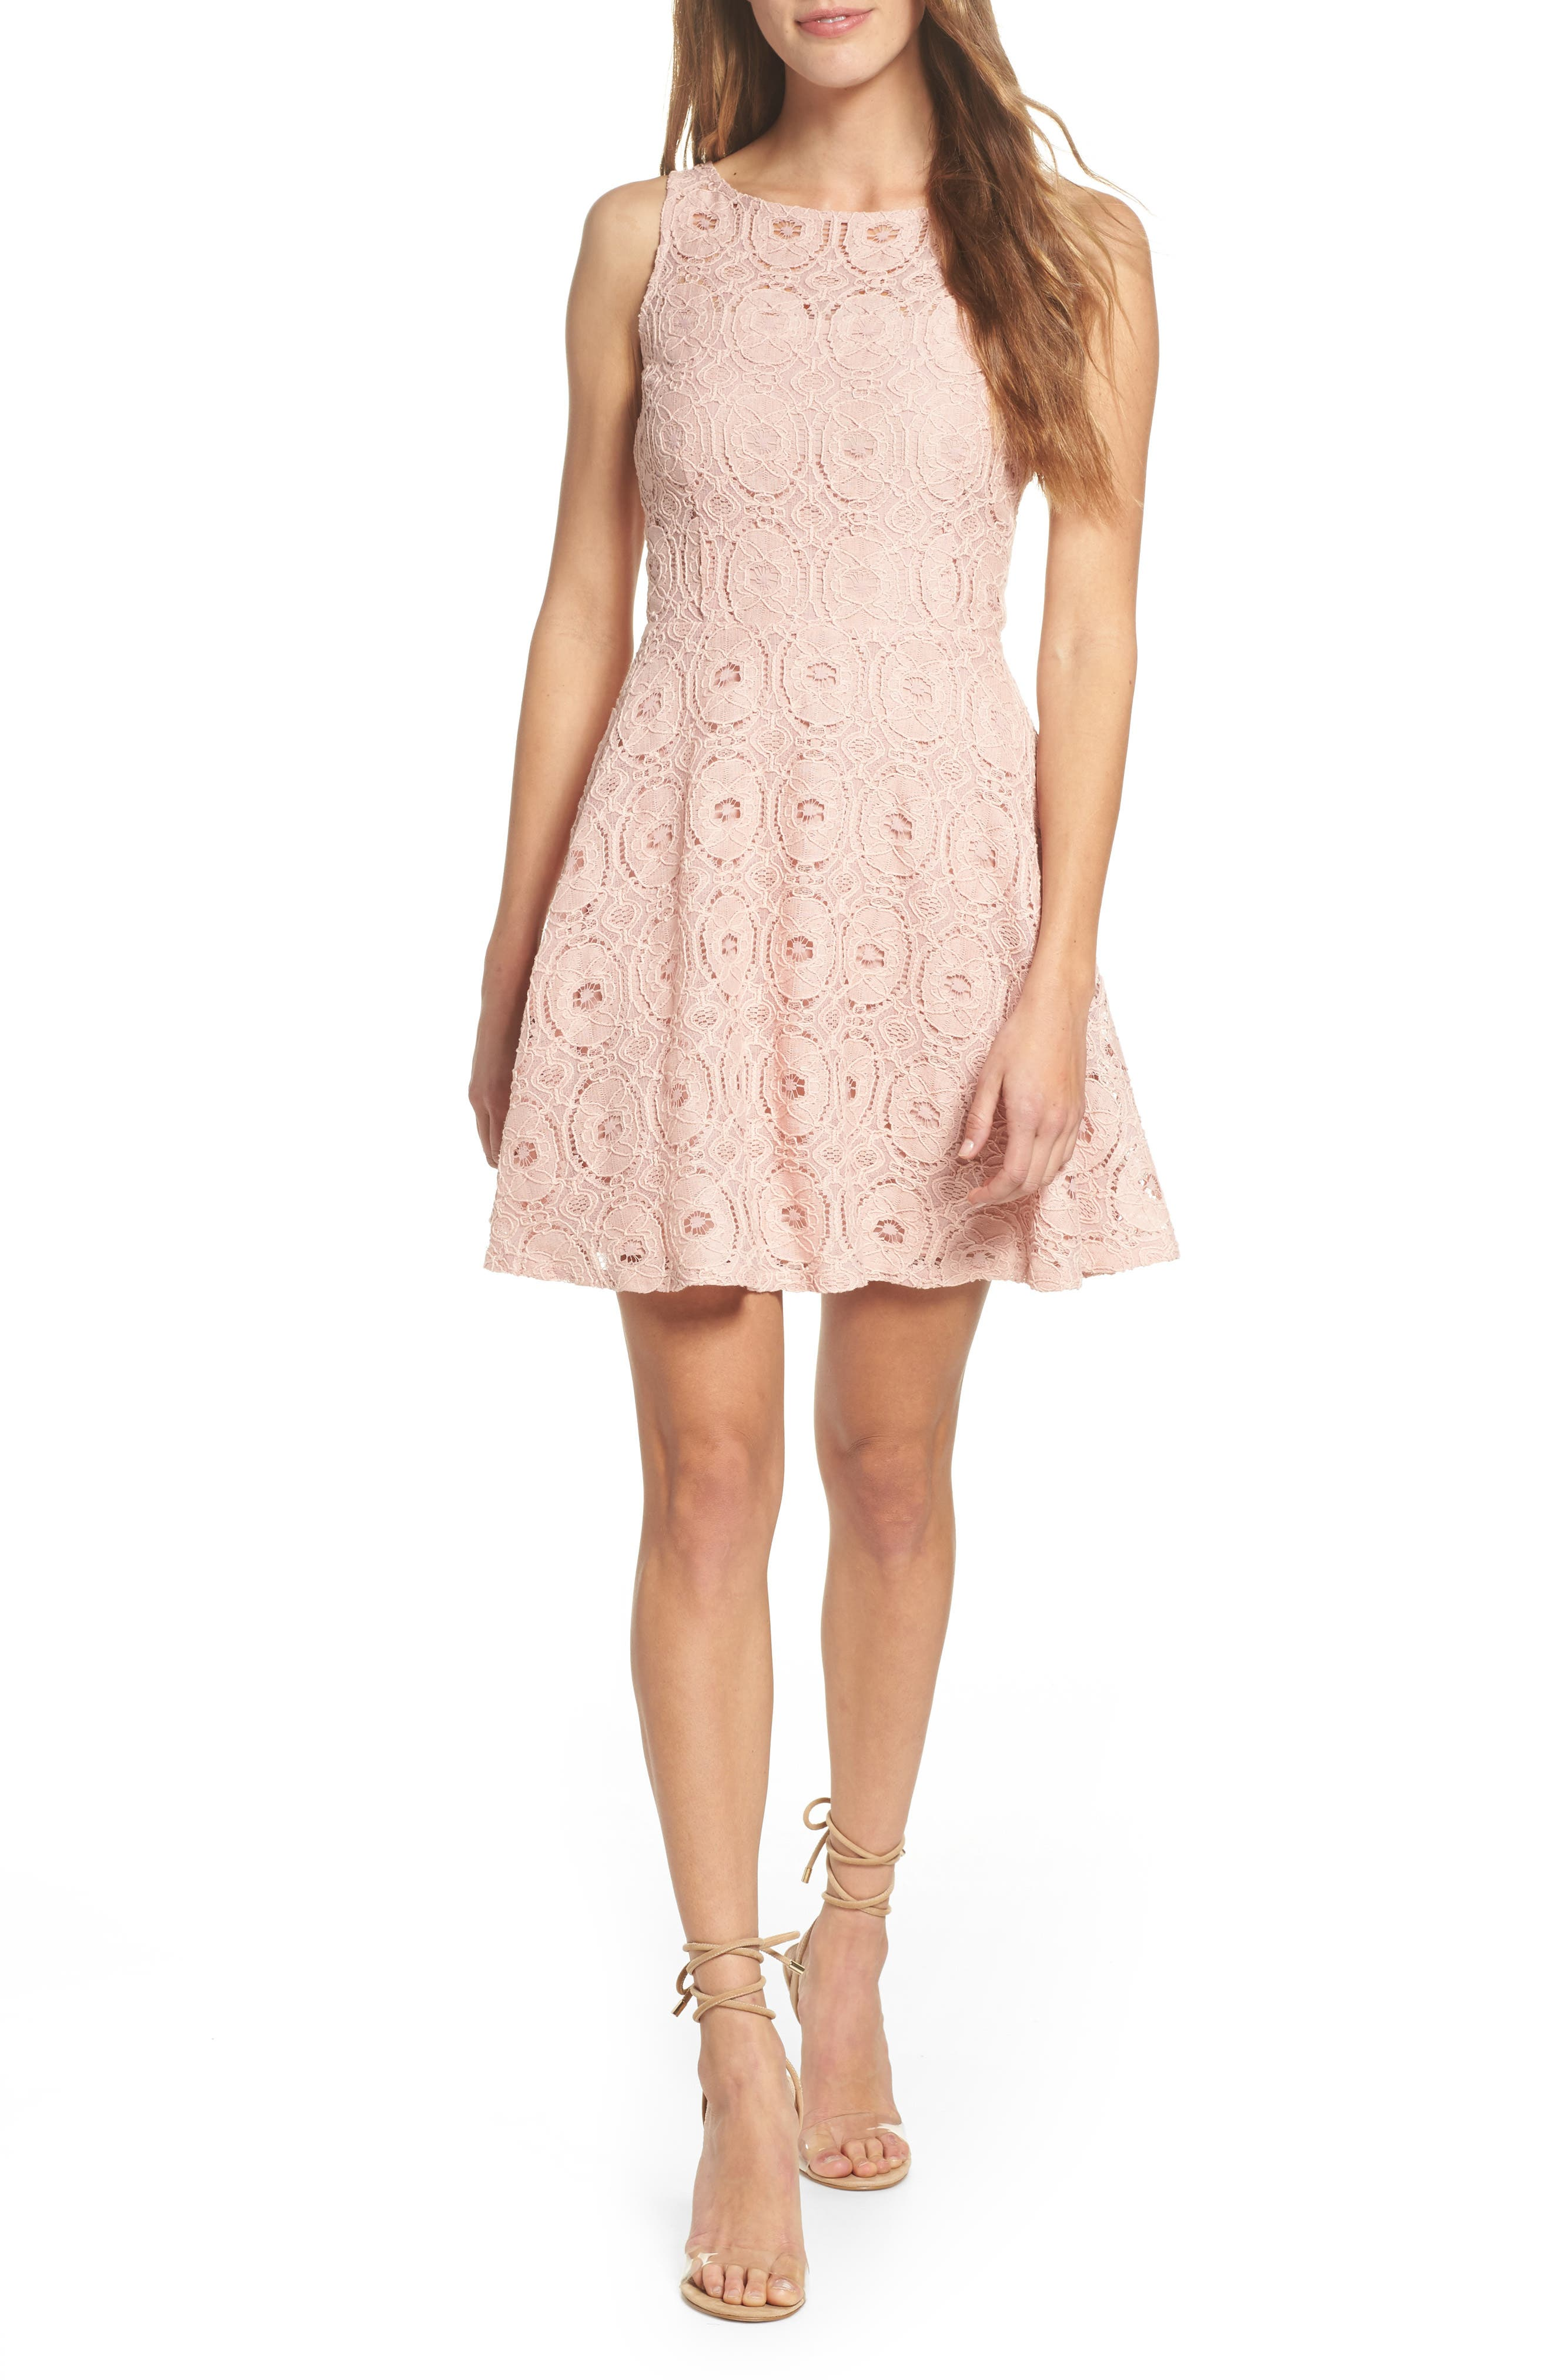 Alternate Image 1 Selected - BB Dakota 'Renley' Lace Fit & Flare Dress (Nordstrom Exclusive)